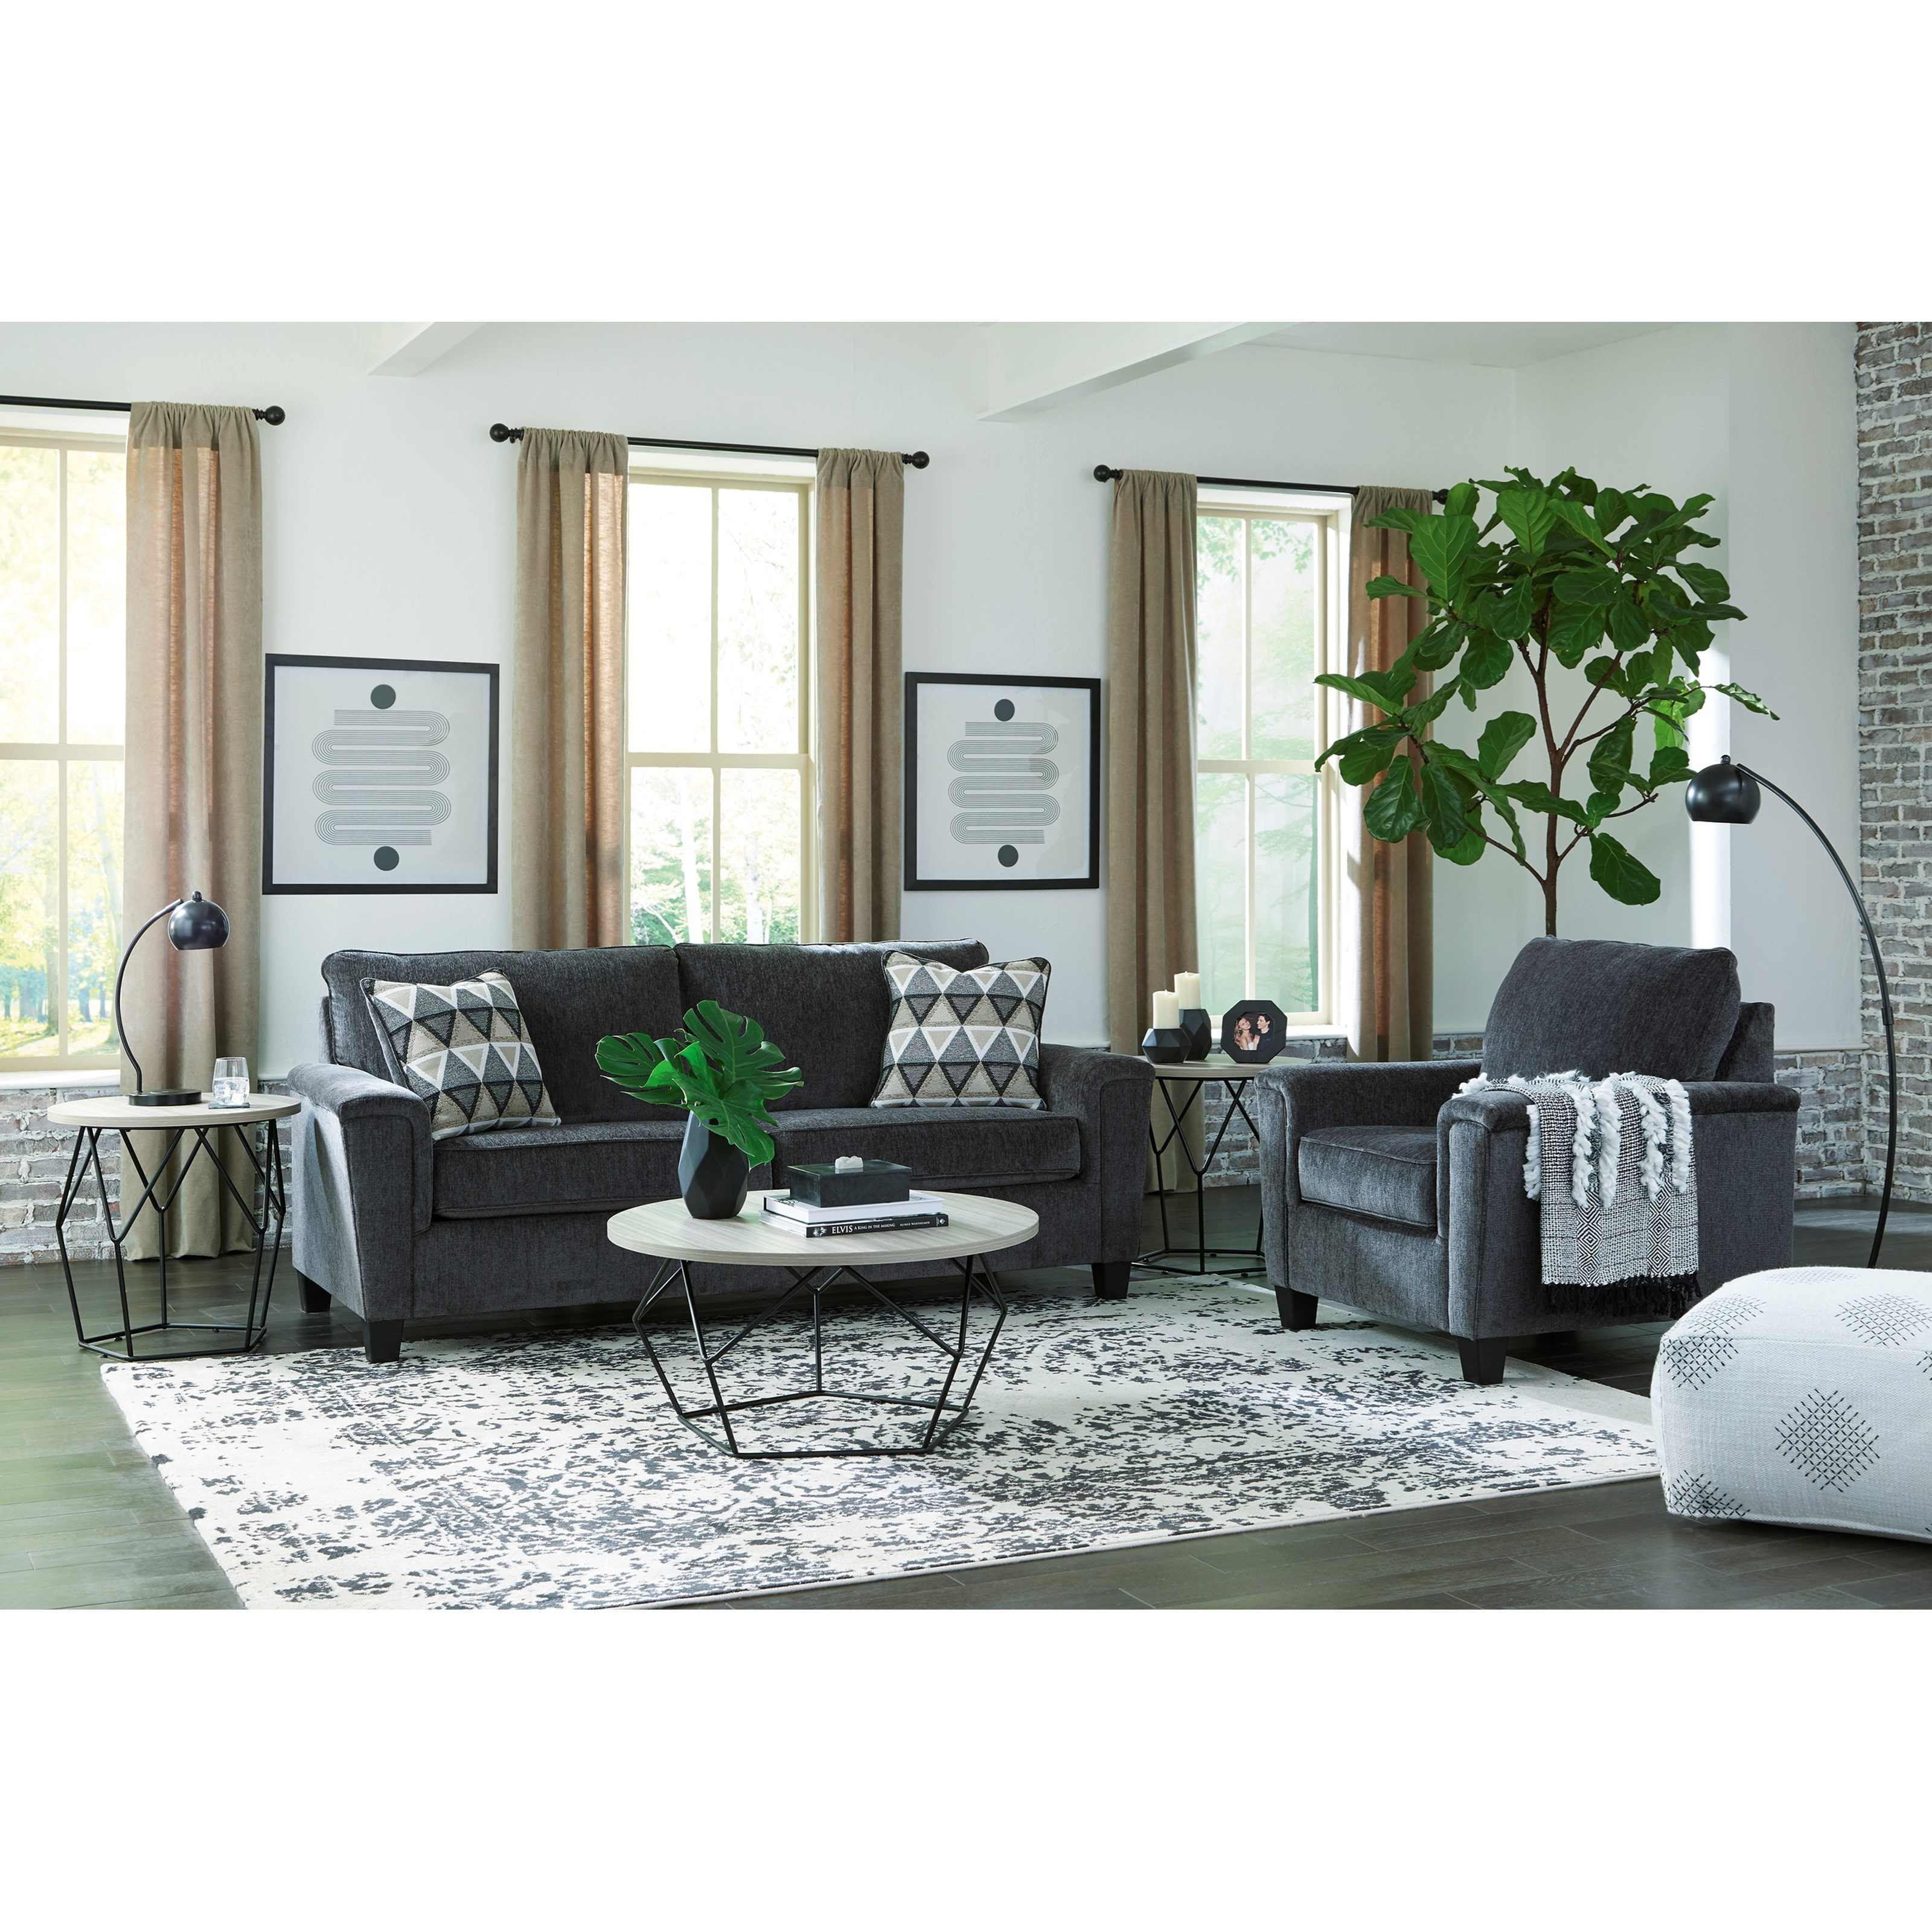 Abinger Living Room Group by Signature Design by Ashley at Furniture Superstore - Rochester, MN